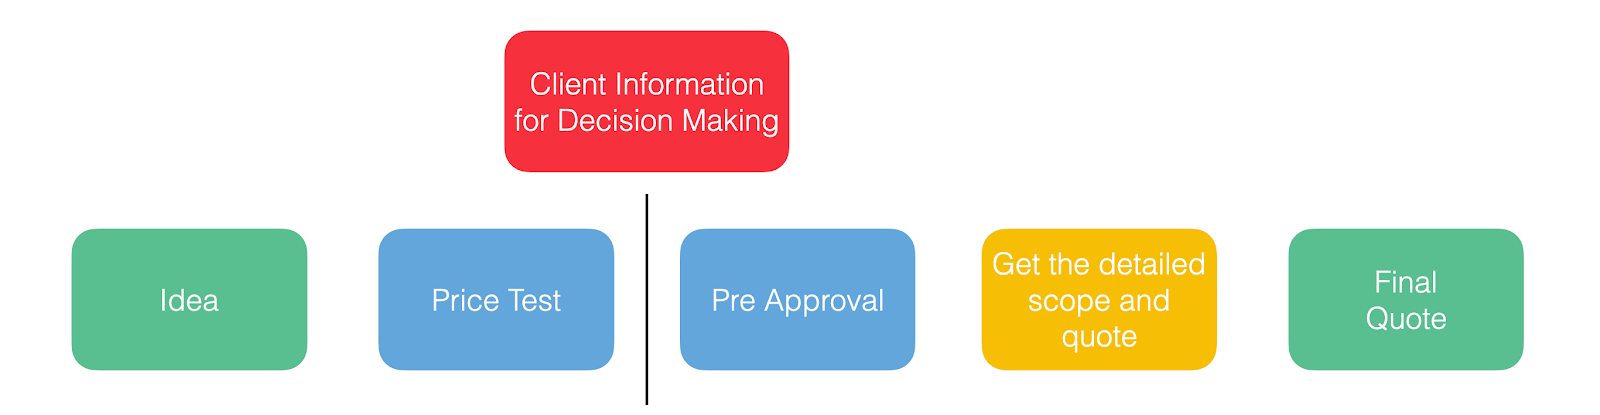 client information for decision making